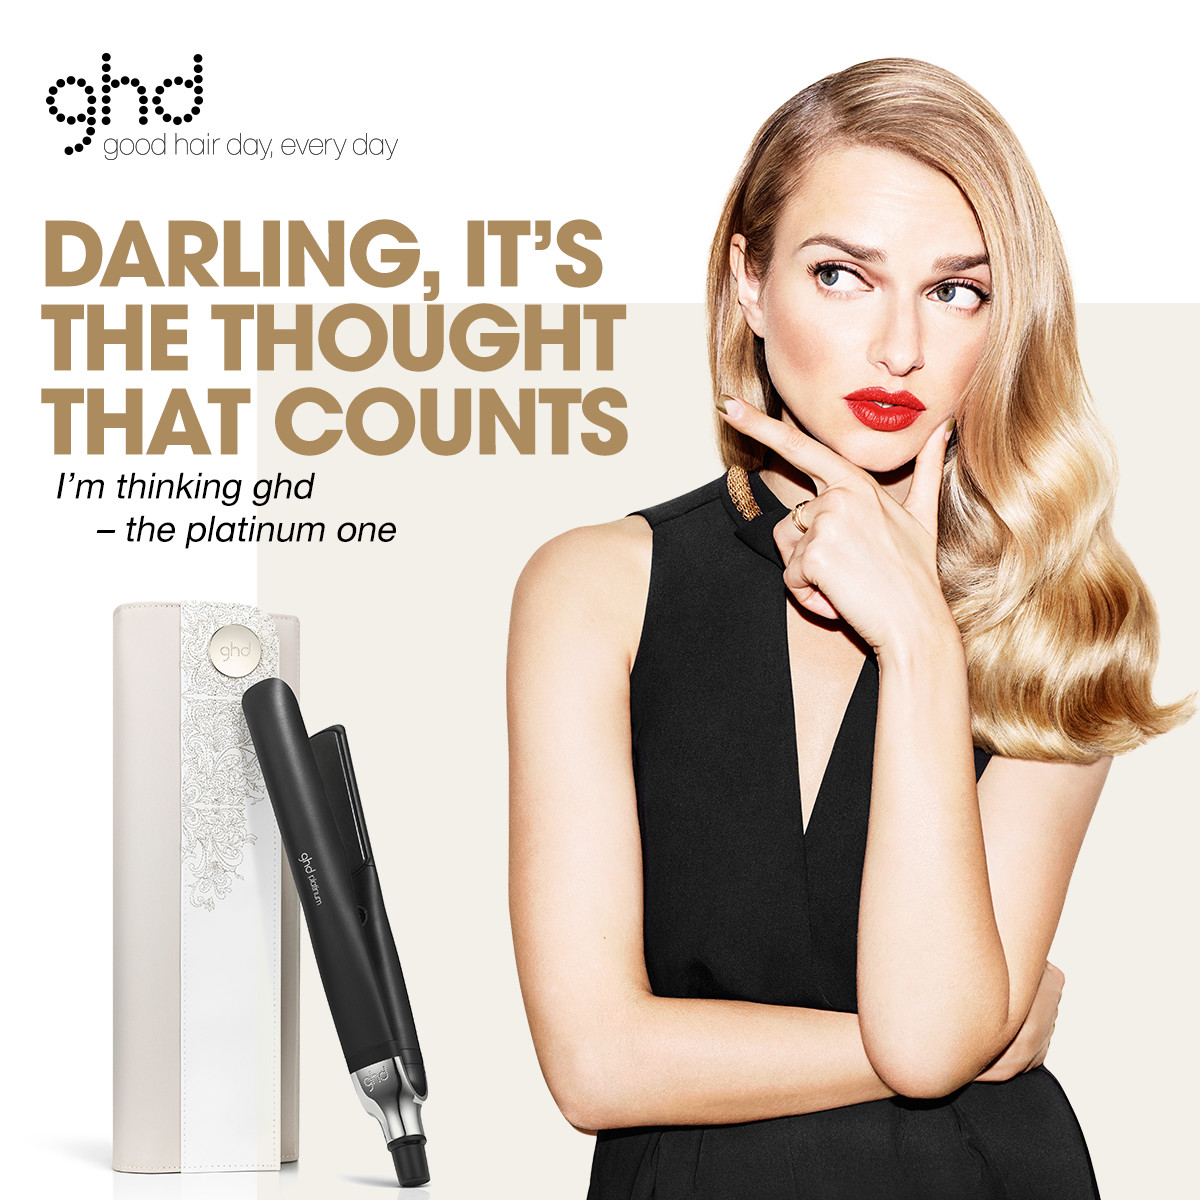 ghd on sale at FLS hairdressing salons